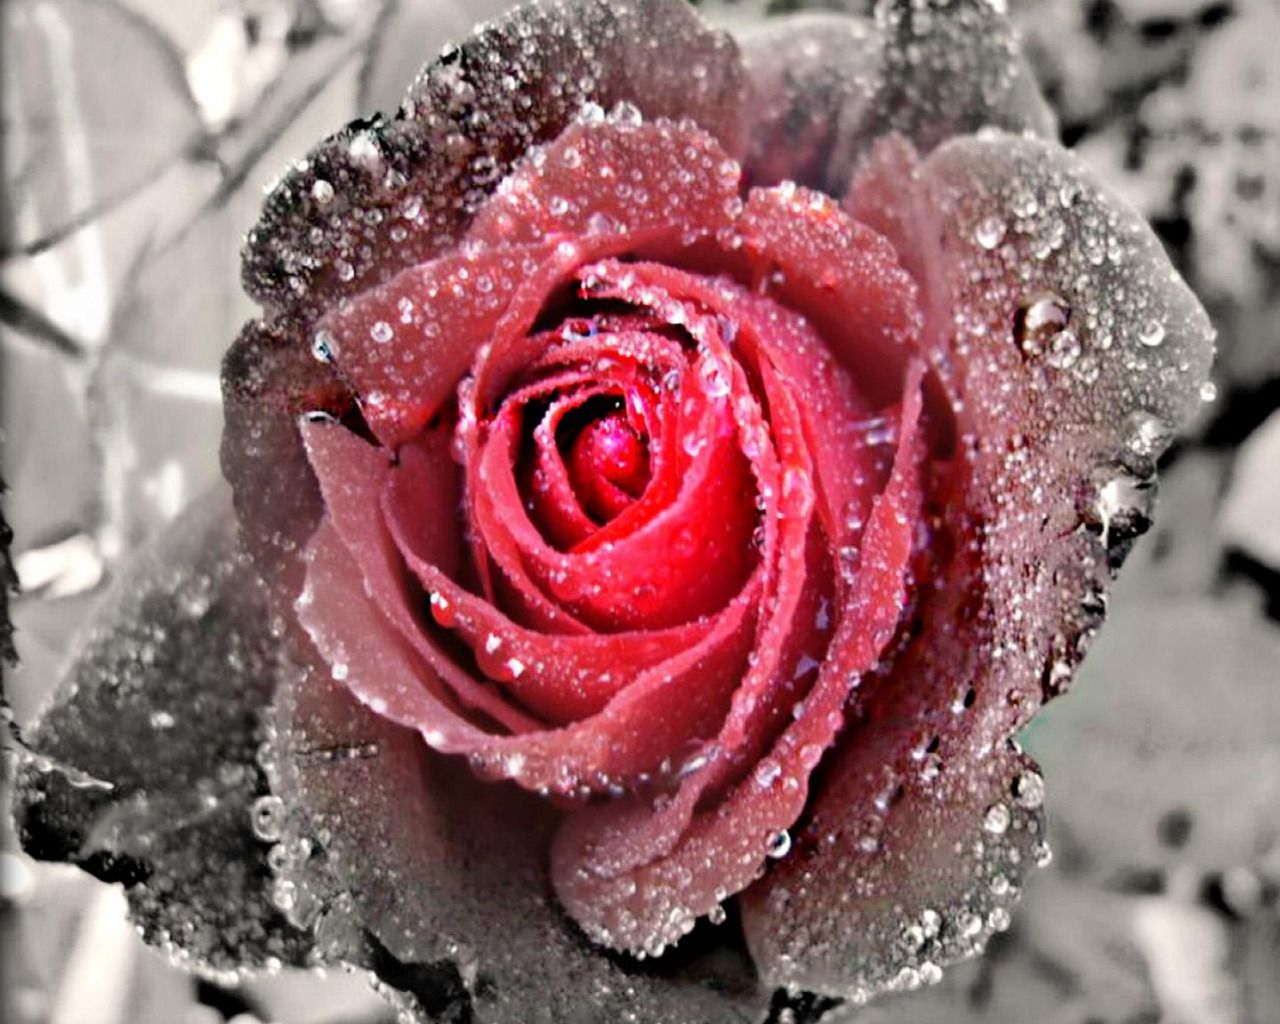 Black And White Rose Wallpaper With Some Color